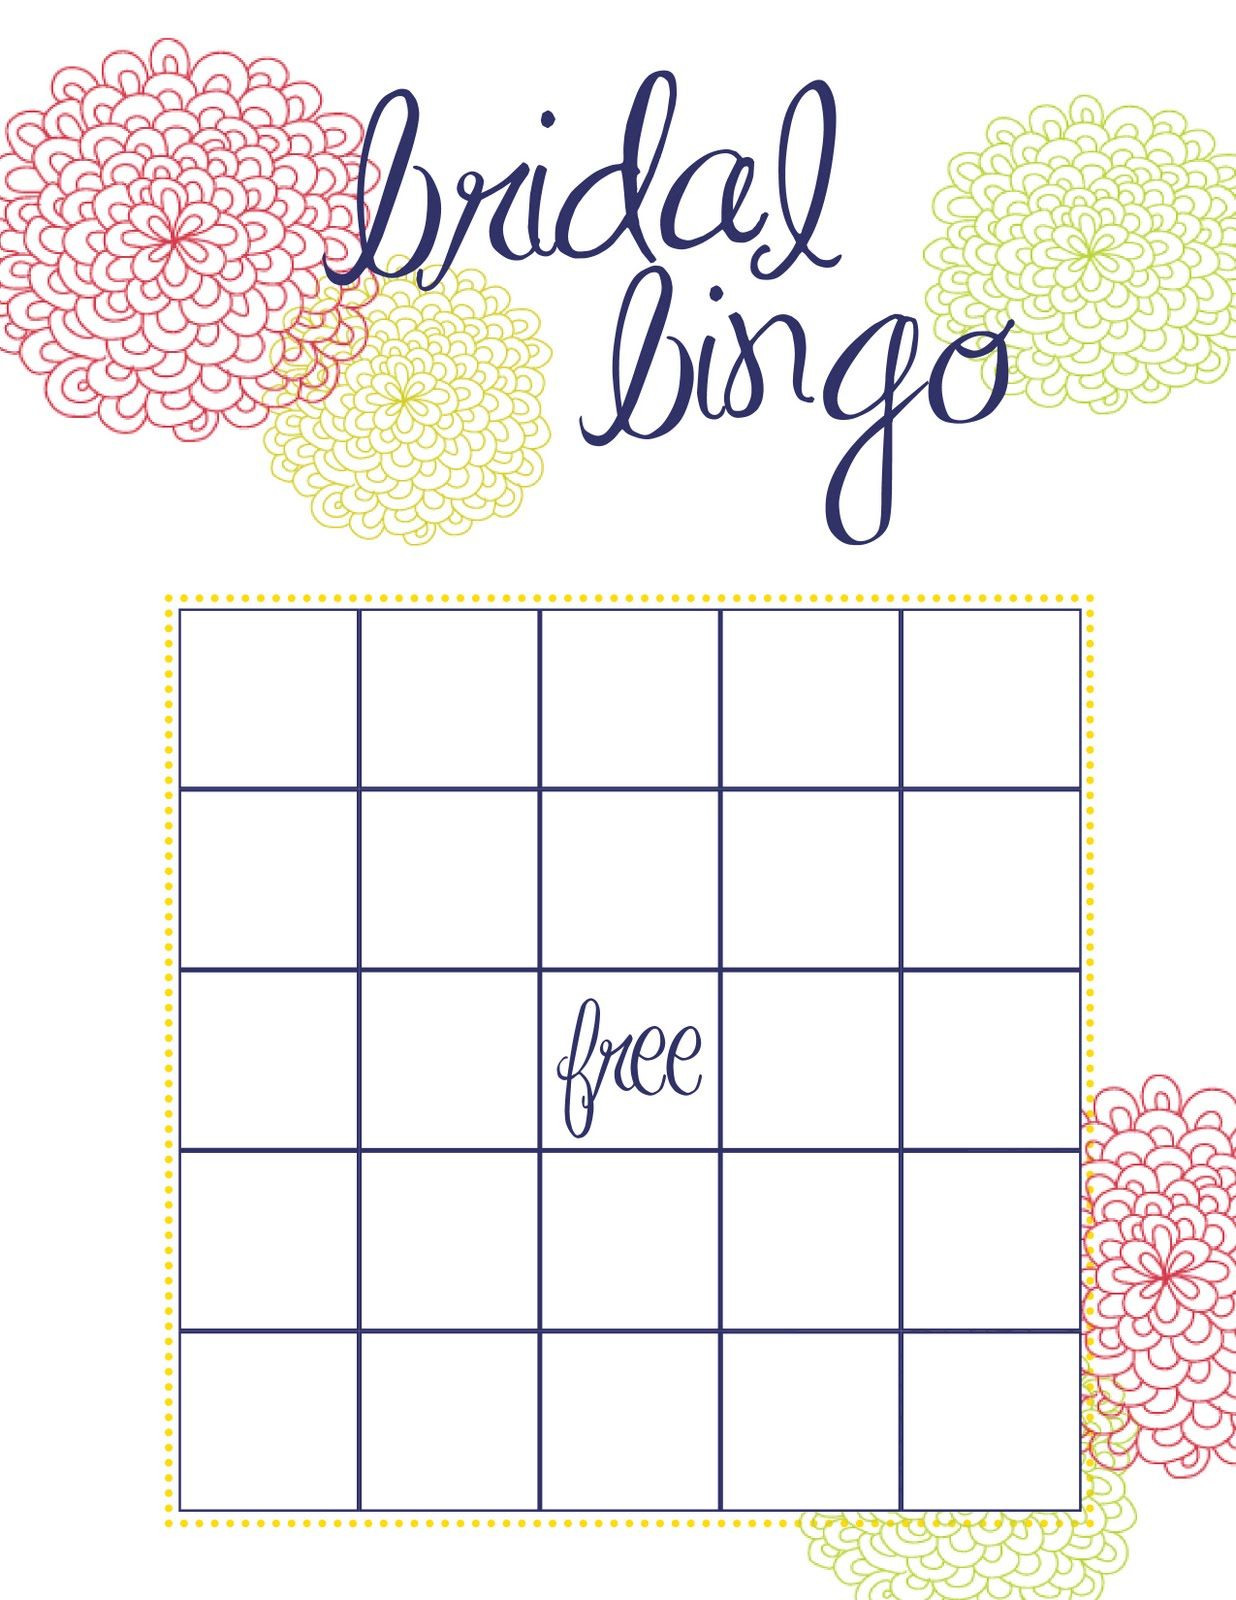 Free Printable Bridal Shower Bingo - Image Cabinets And Shower - Free Printable Bridal Shower Bingo